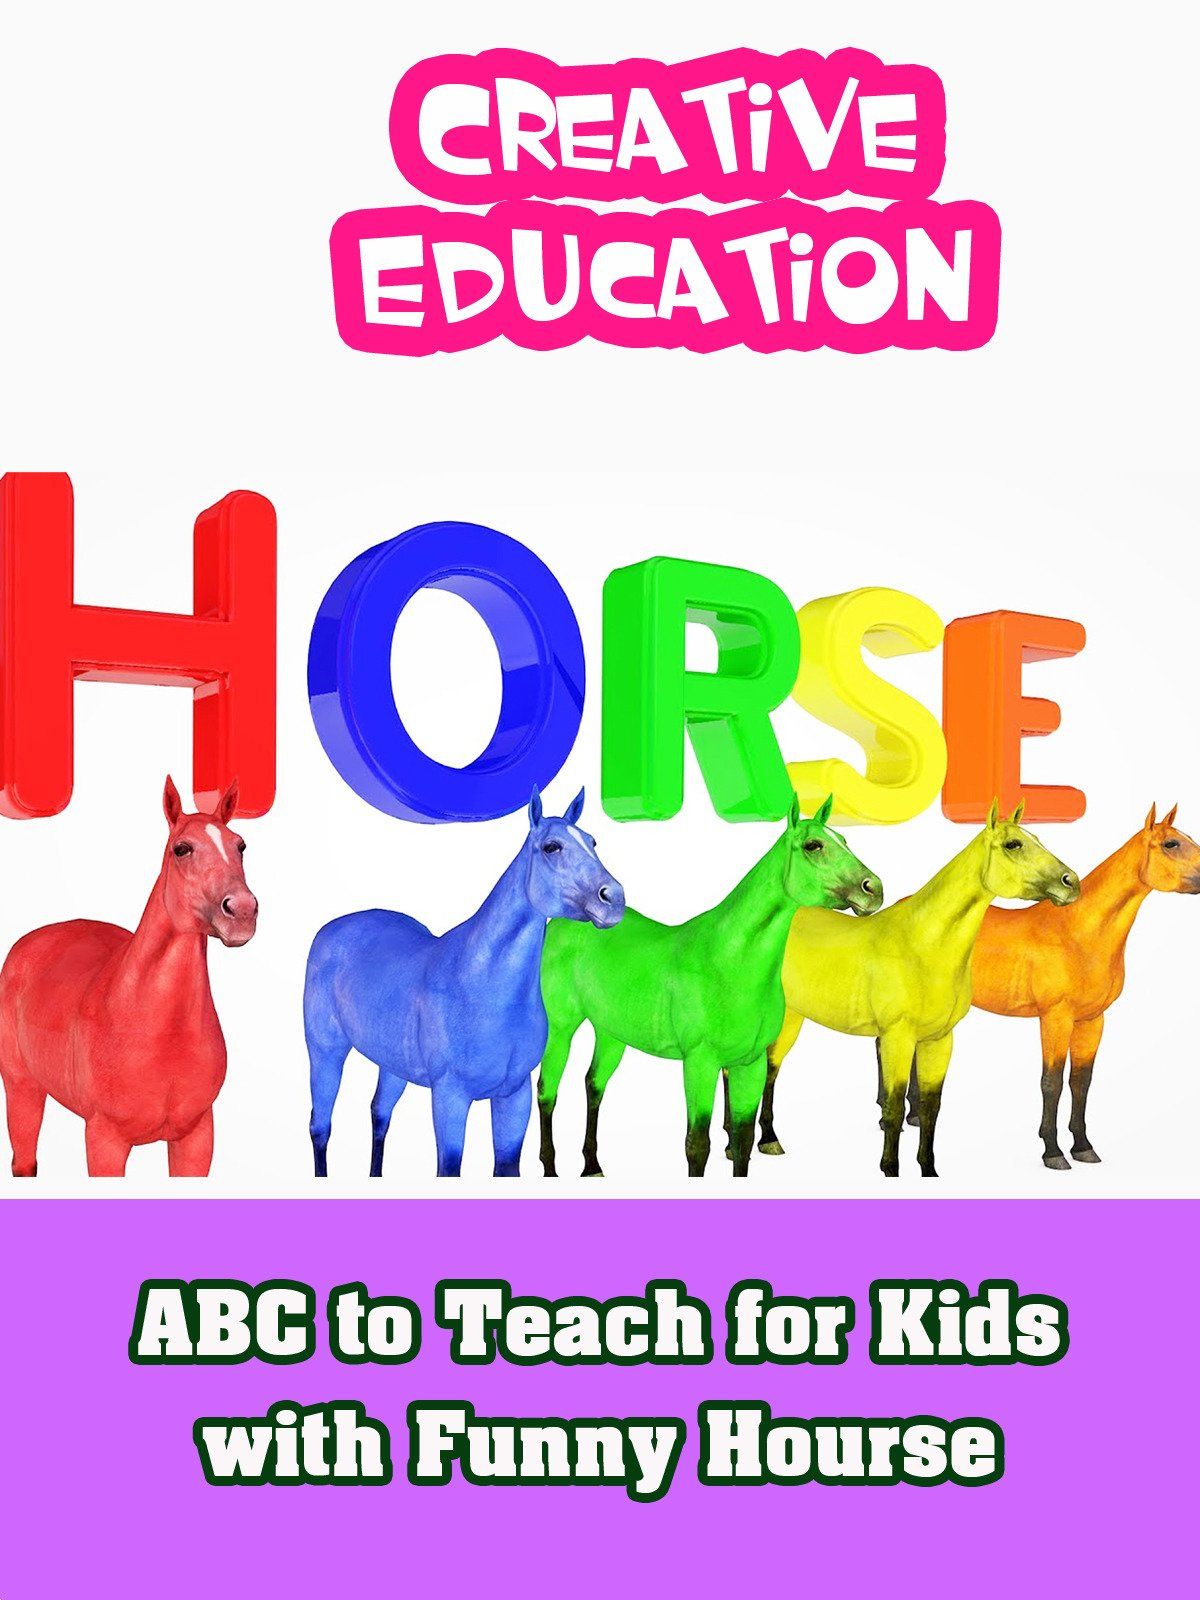 ABC to Teach for Kids with Funny Hourse